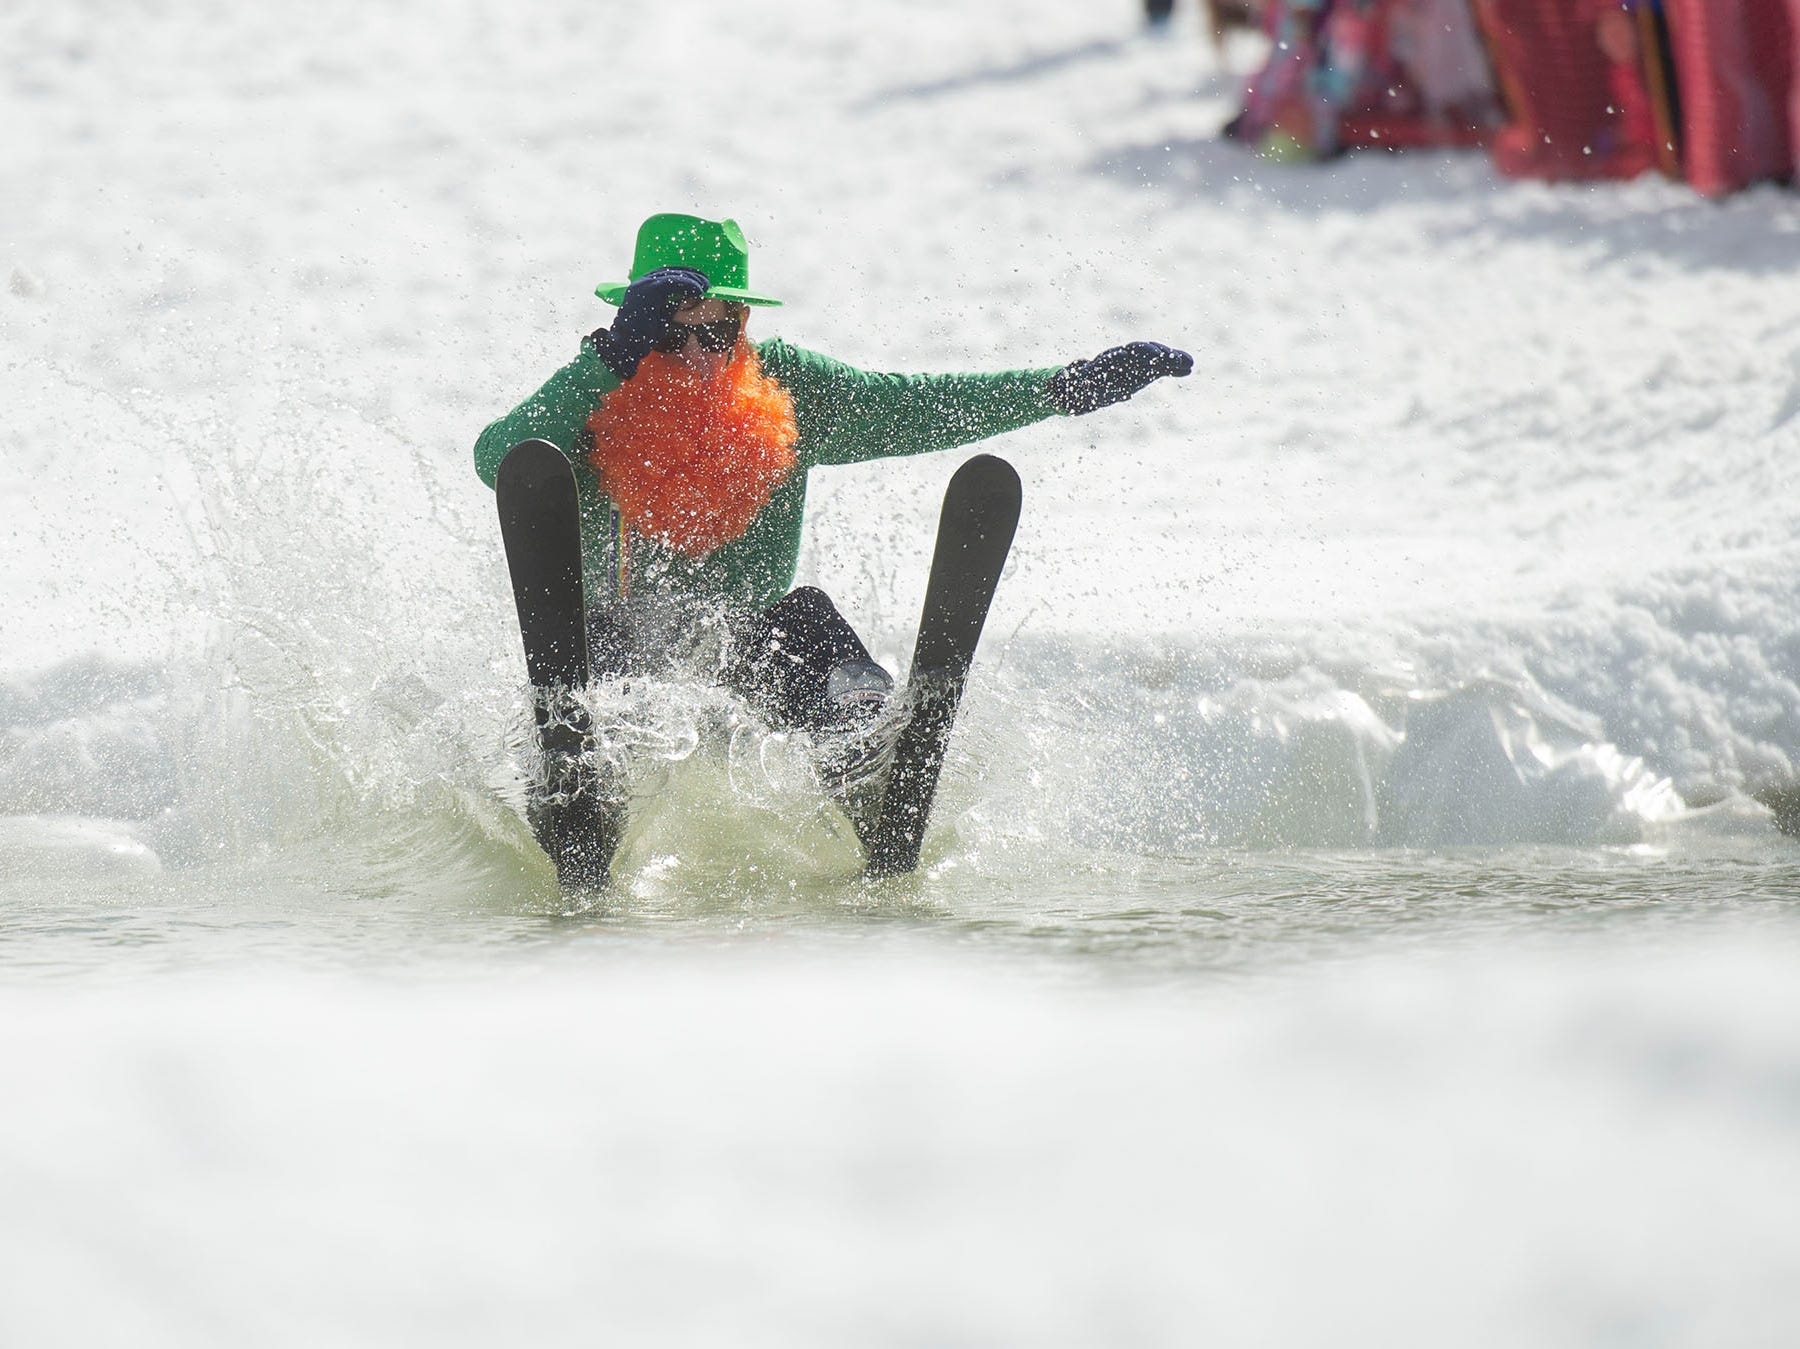 This leprechaun didn't find a pot of gold at the other side of the pond at Roundtop Mountain Resort on Saturday, March 16, 2019.